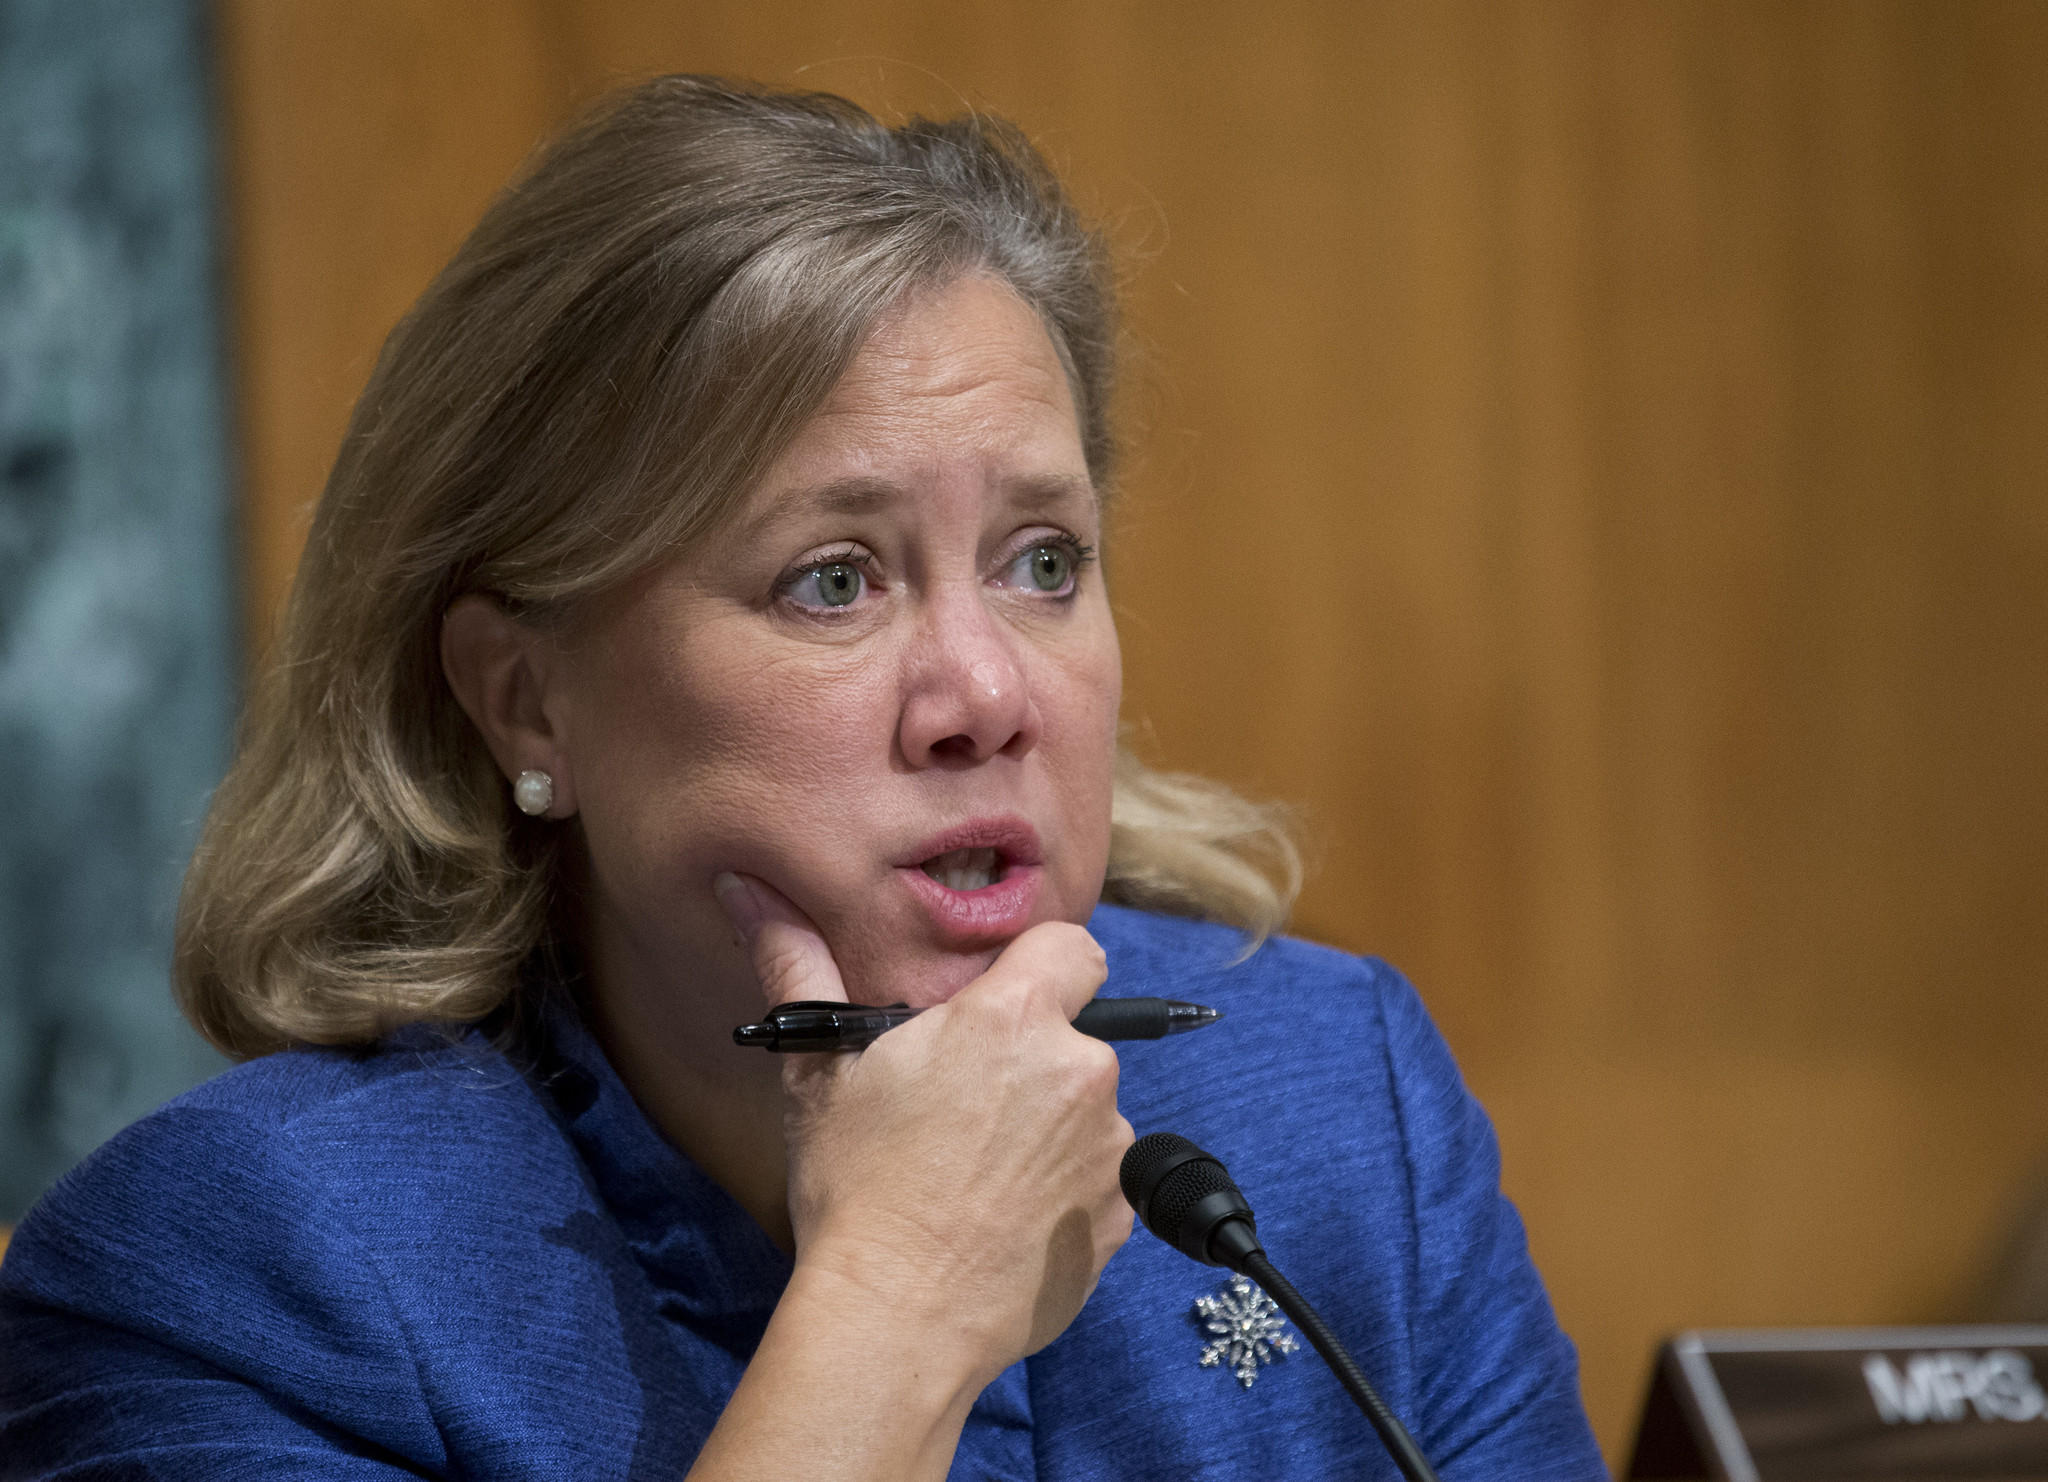 Sen. Mary Landrieu (D-La.) has good reason to look worried. Her campaign to win a fourth term in the Senate looks difficult as Louisiana's electorate has turned more Republican.